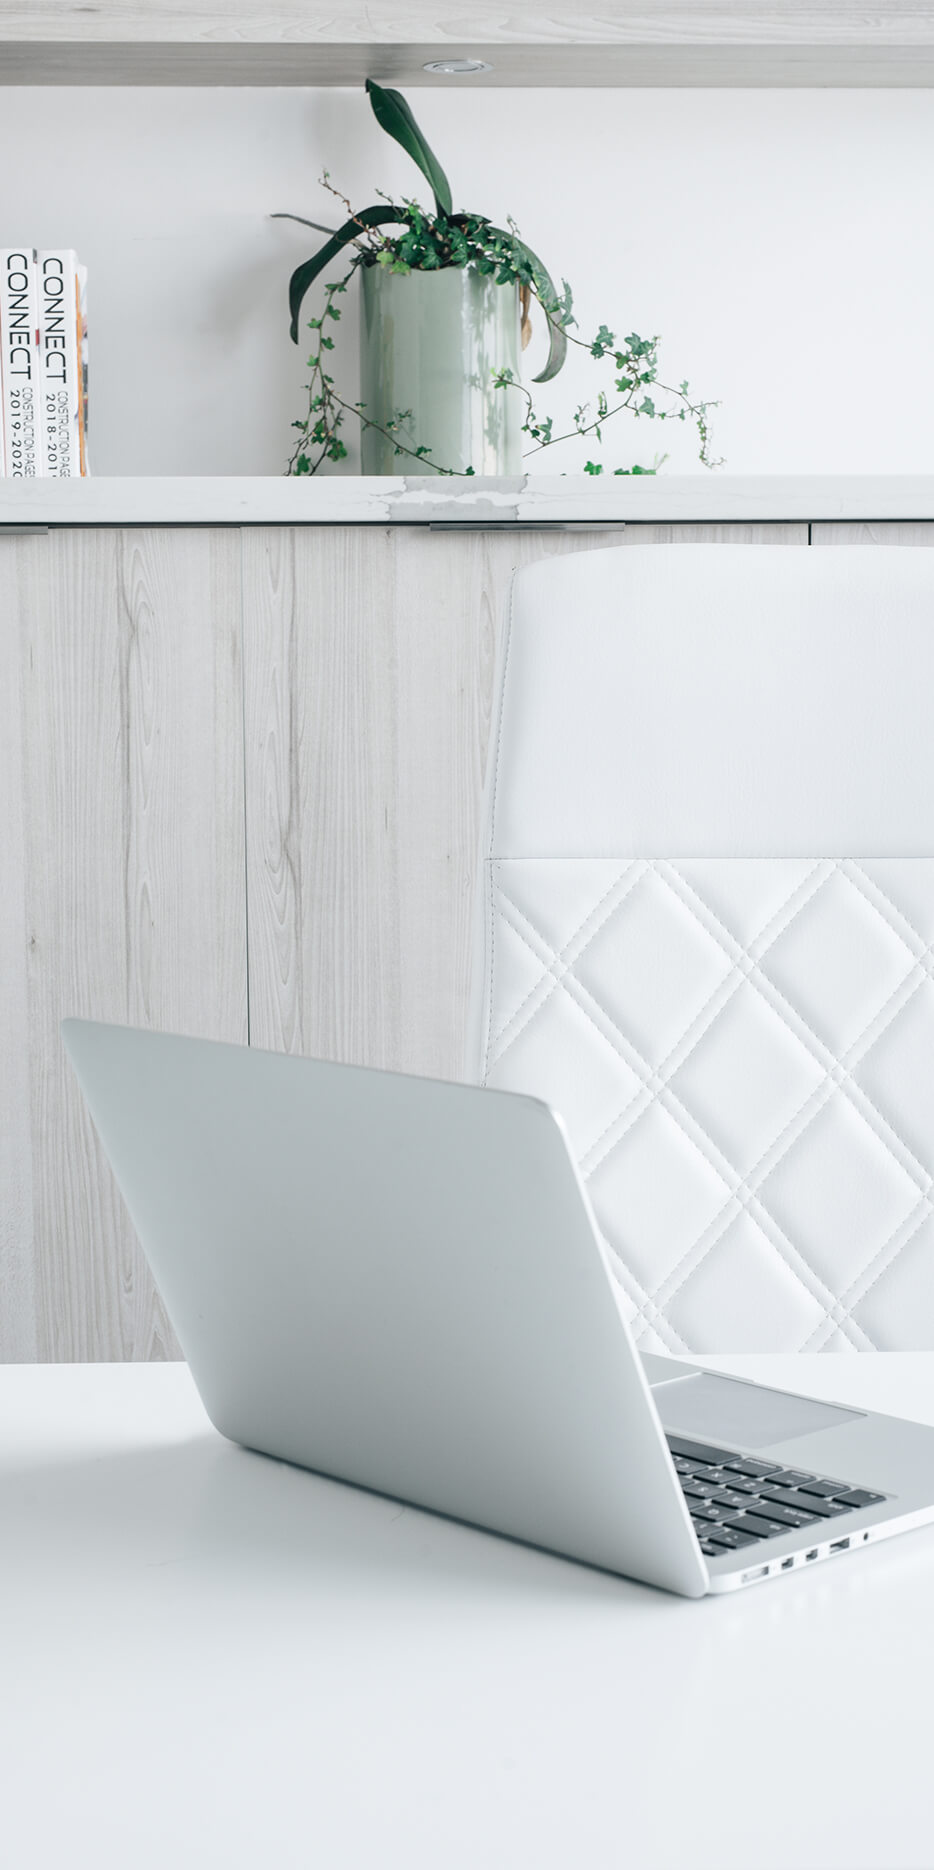 Laptop on a white table